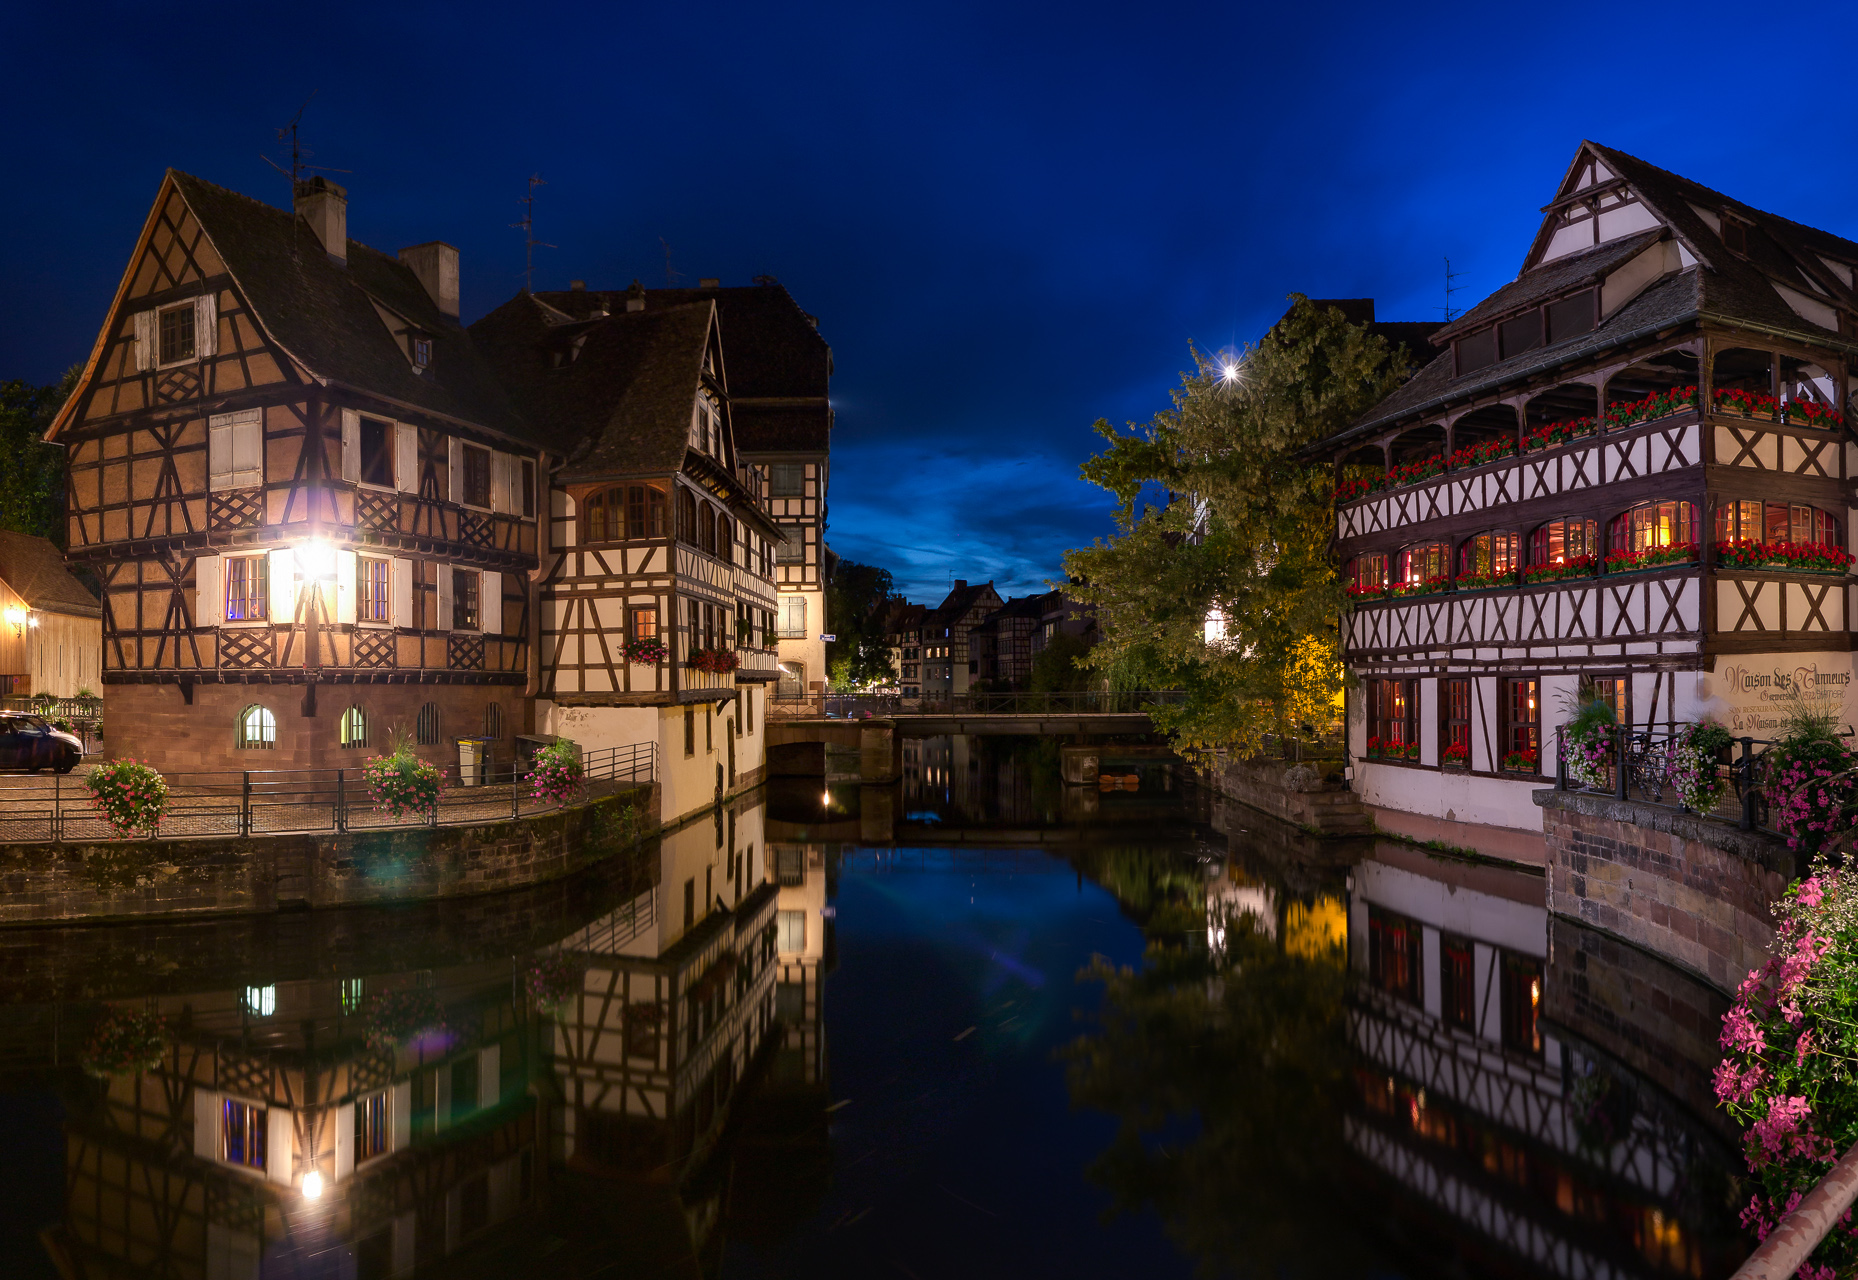 La_Petit_France_at_night_Strasbourg_France